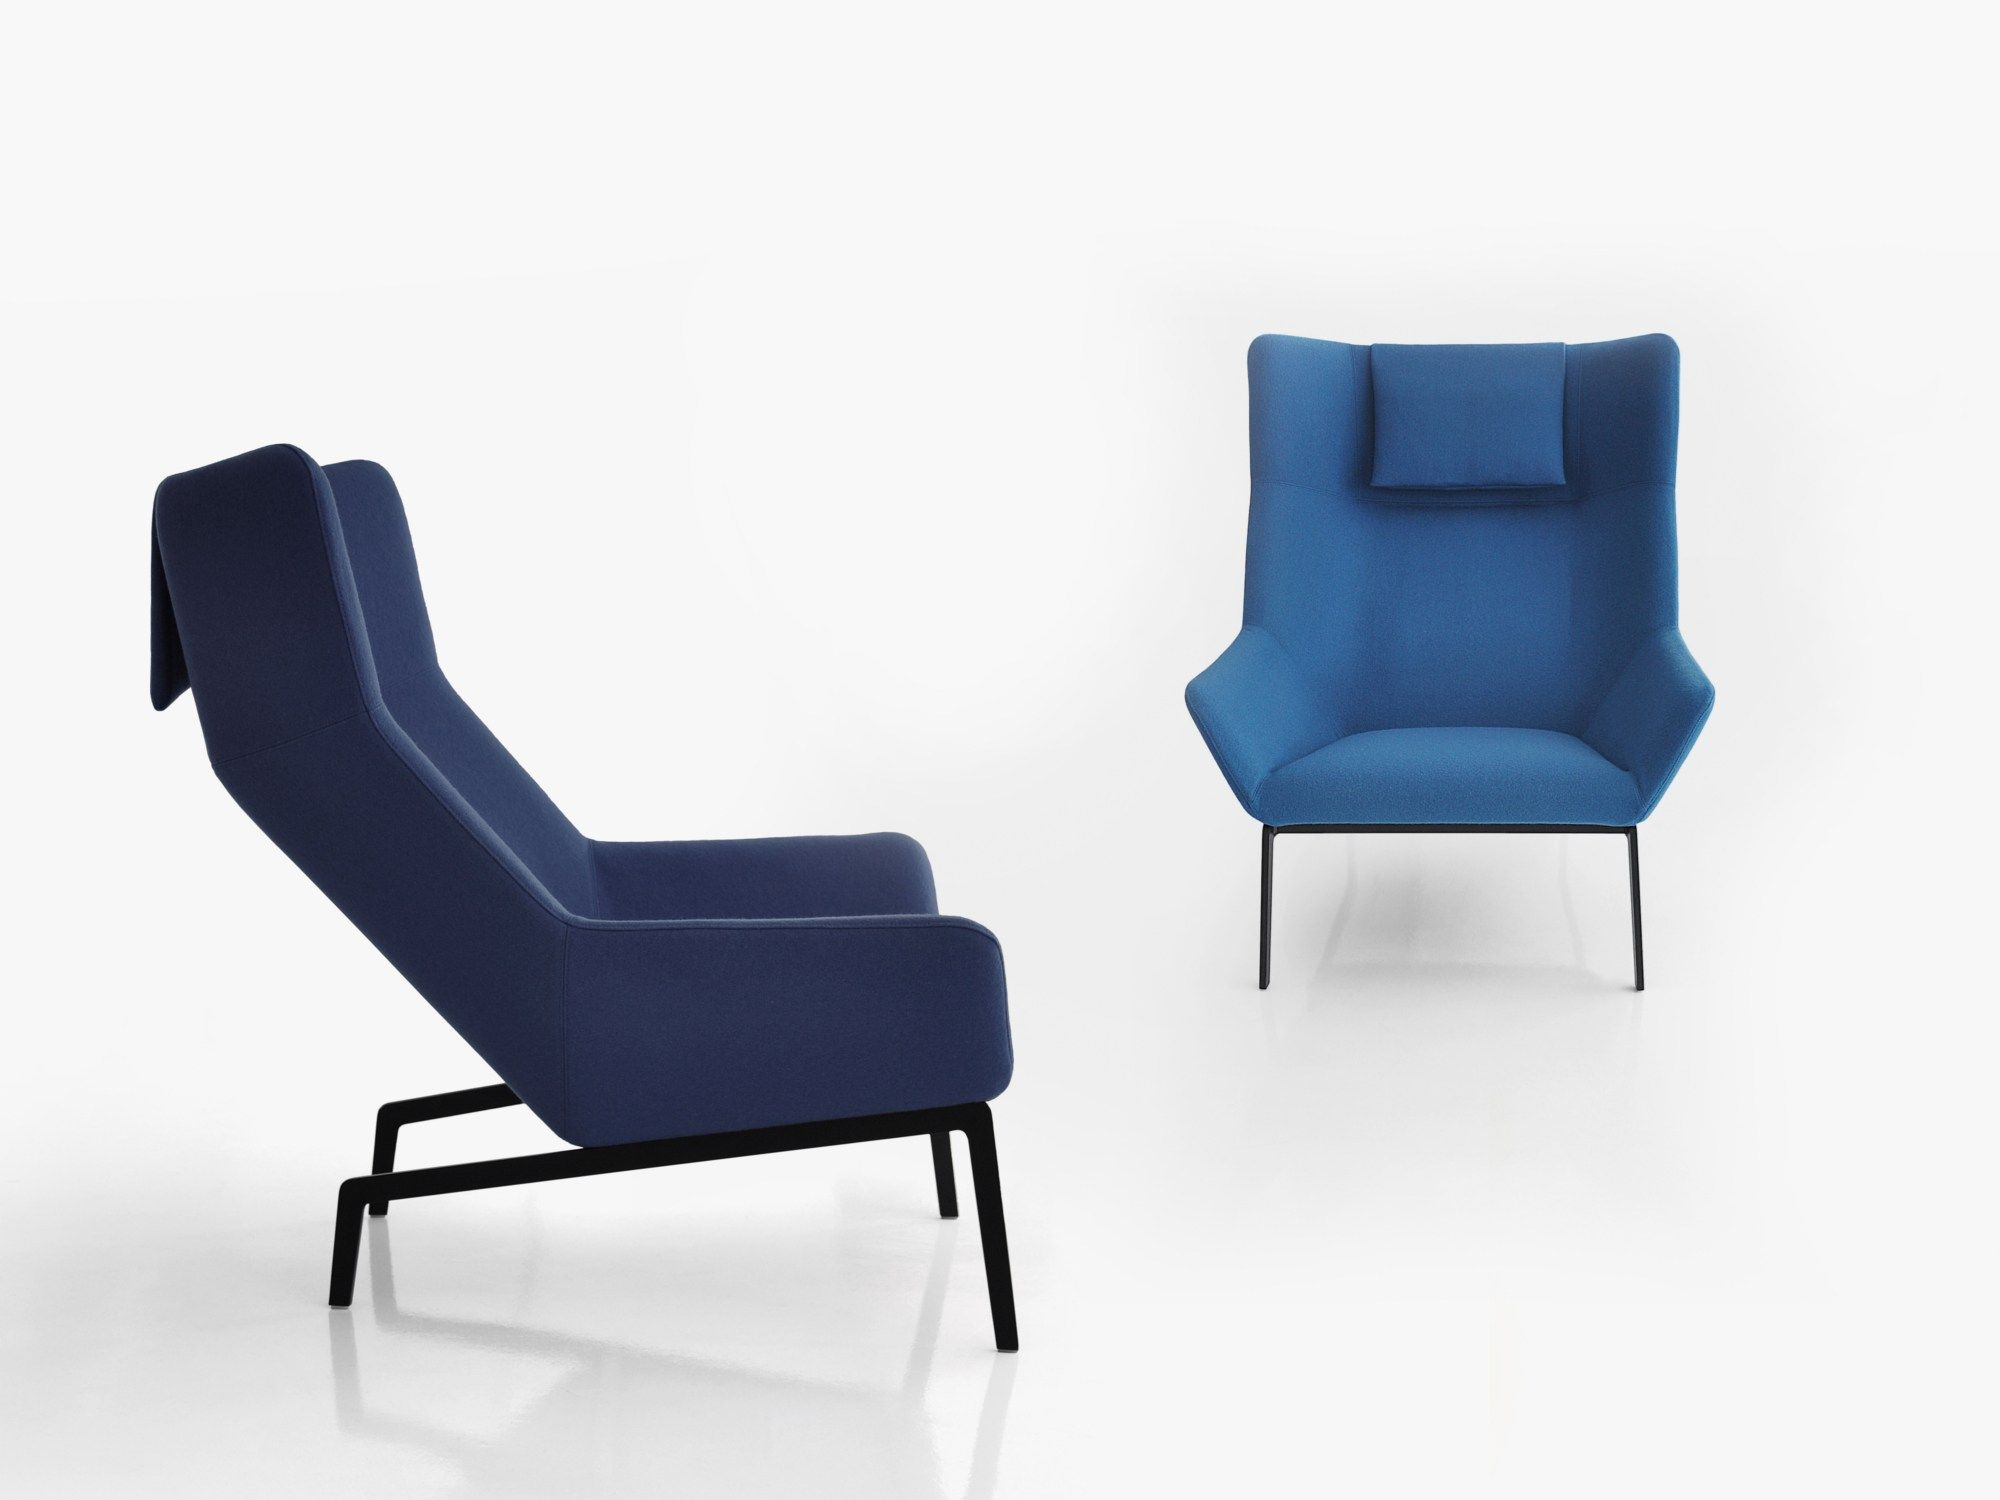 Upholstered Armchair With Footstool PARK Park Collection By BENSEN